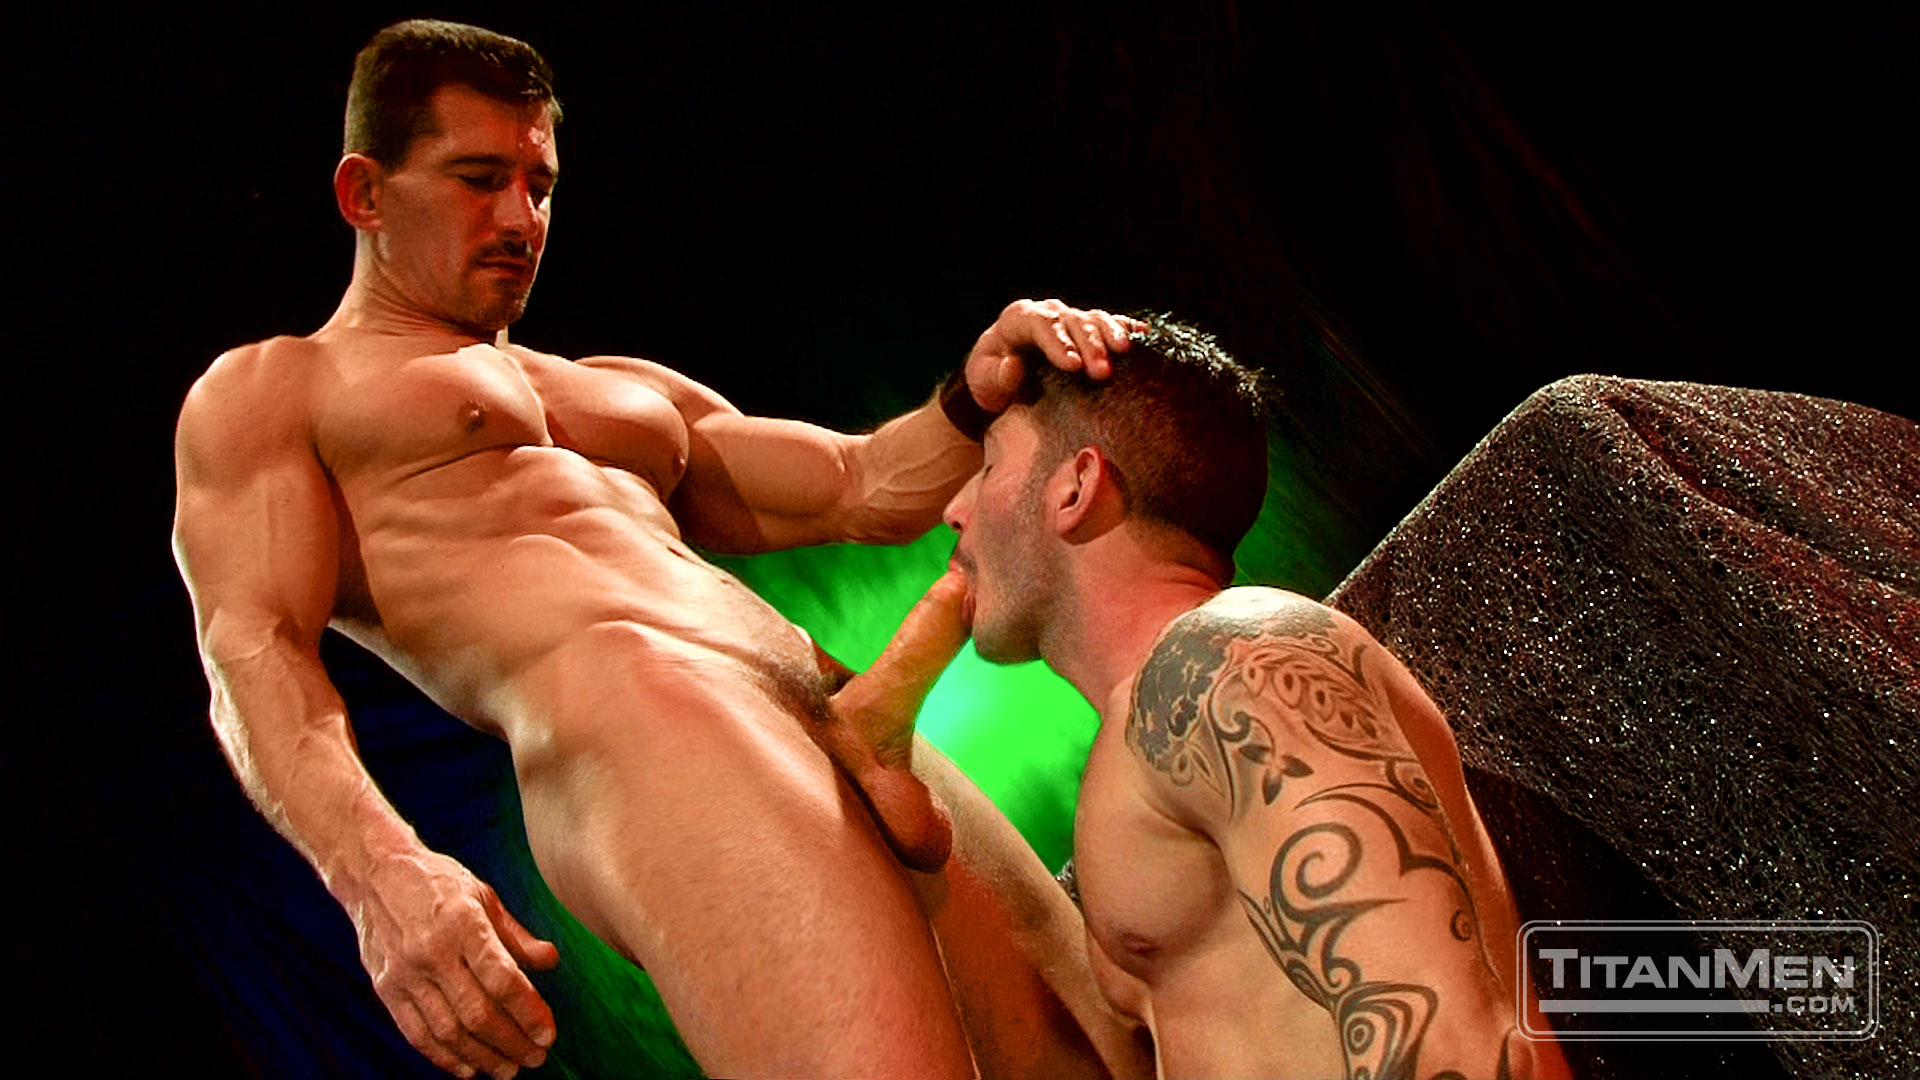 TitanMen exclusive David Anthony with Johnny Hazzard - Head Trip - Scene 3